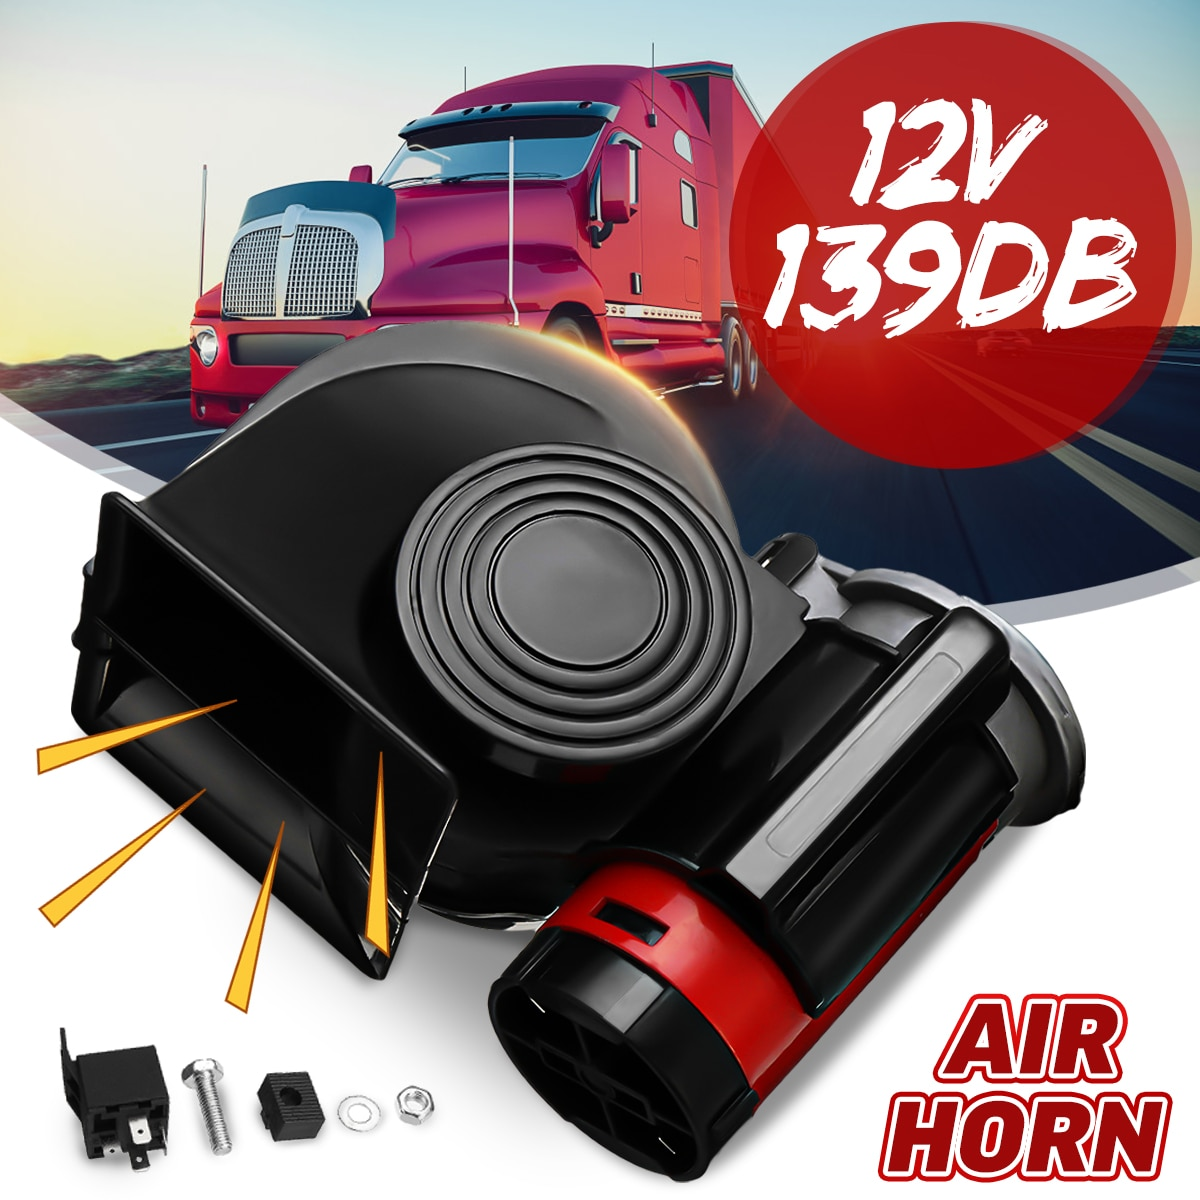 12V 139DB waterproof Loud Electronic Snail Ultra Compact Dual Air Horn Fit for car vehicle motorcycle yacht boat SUV bike buses